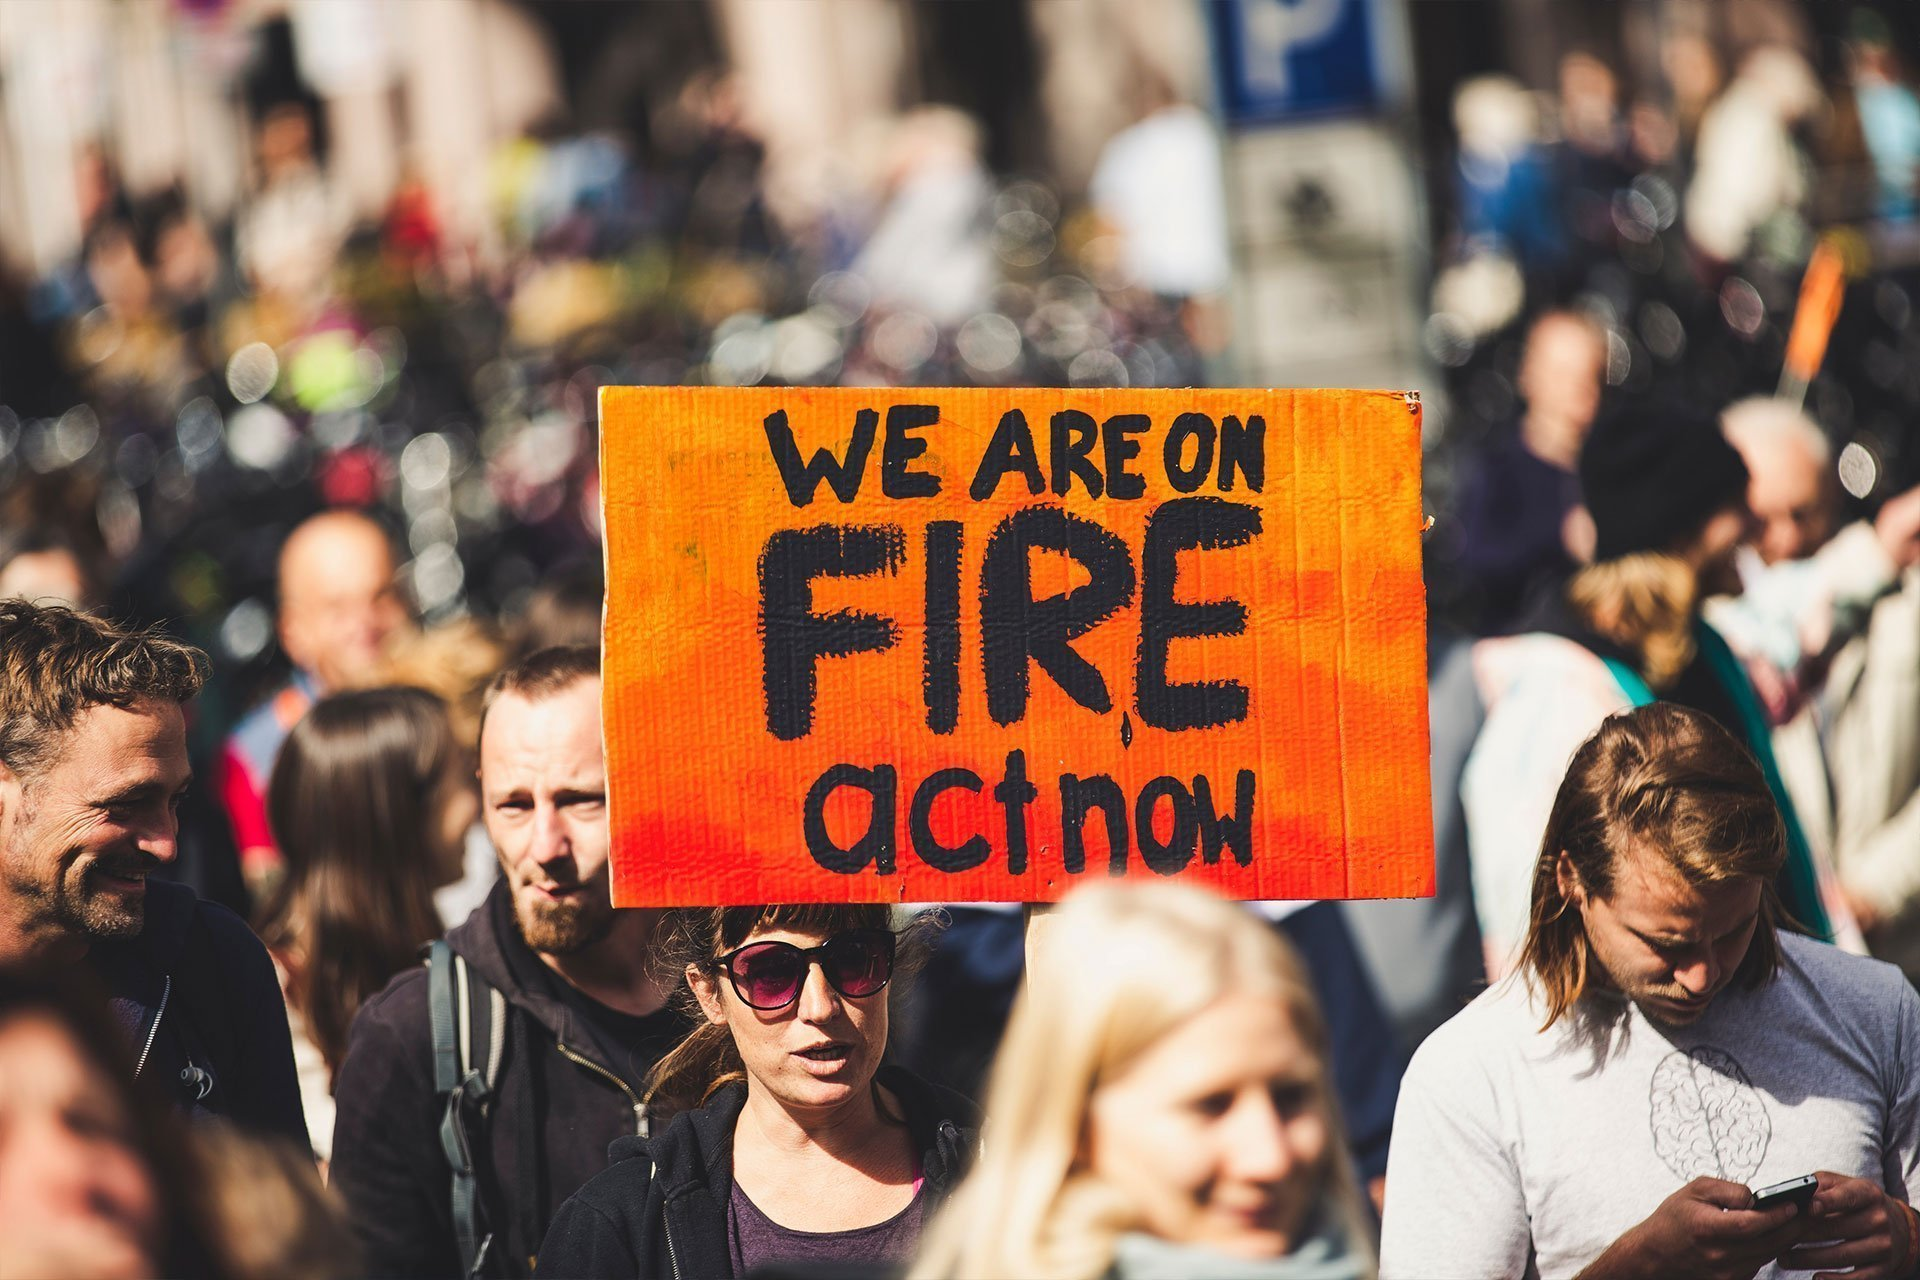 University of Seventh California climate strike: 'The world is on fire'